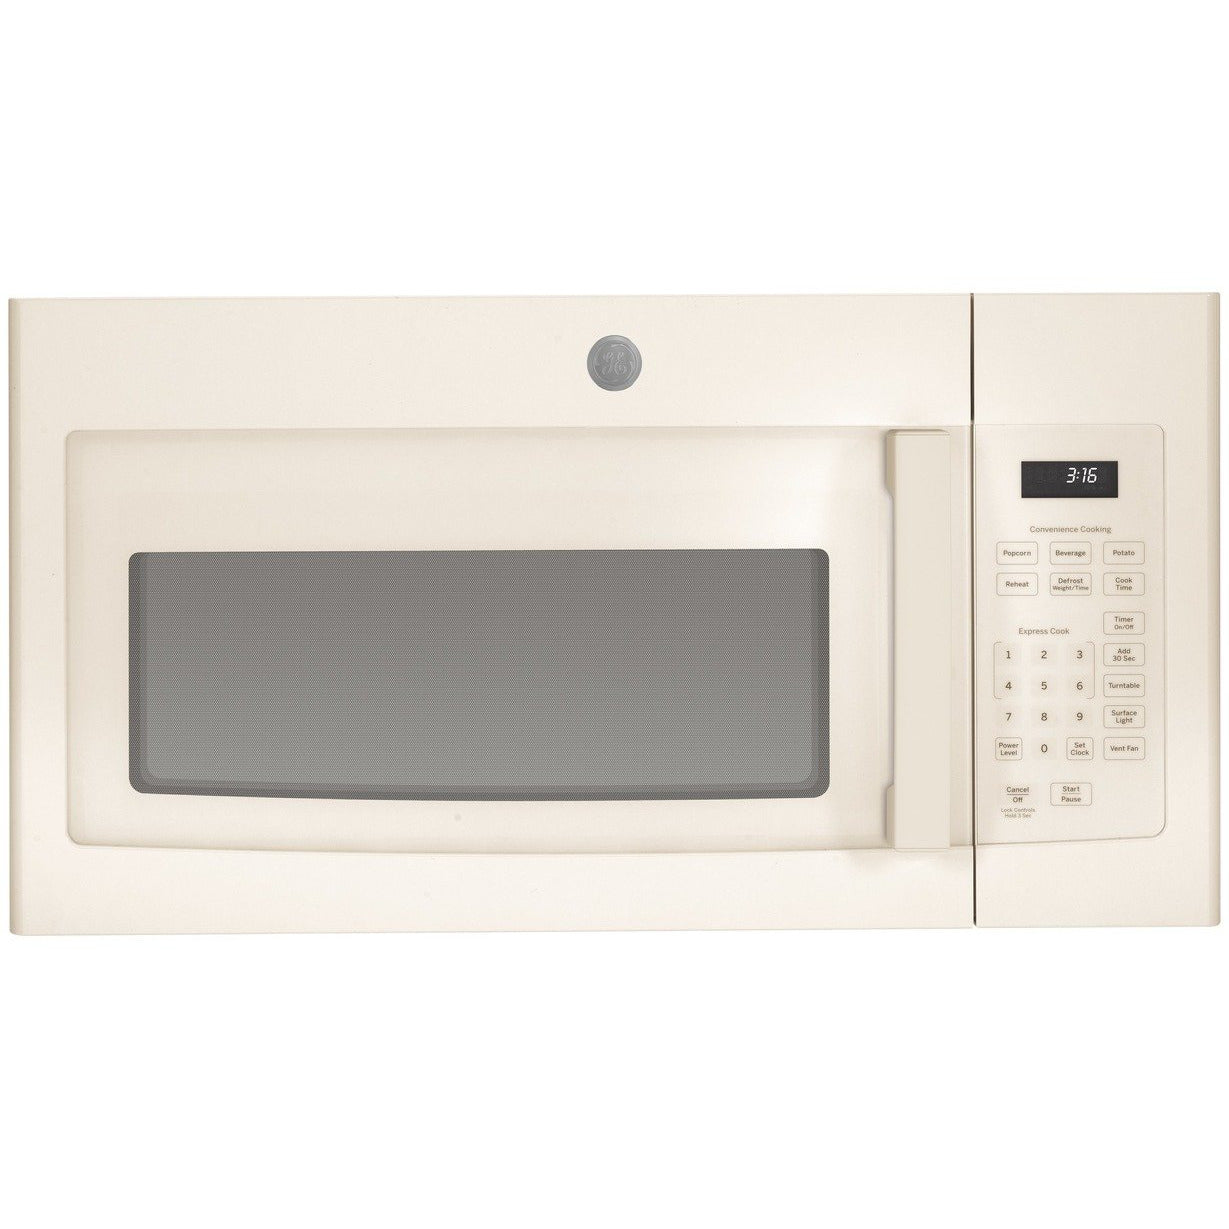 GE® 1.6 Cu. Ft. Over-the-Range Microwave Oven - Casa Muebles